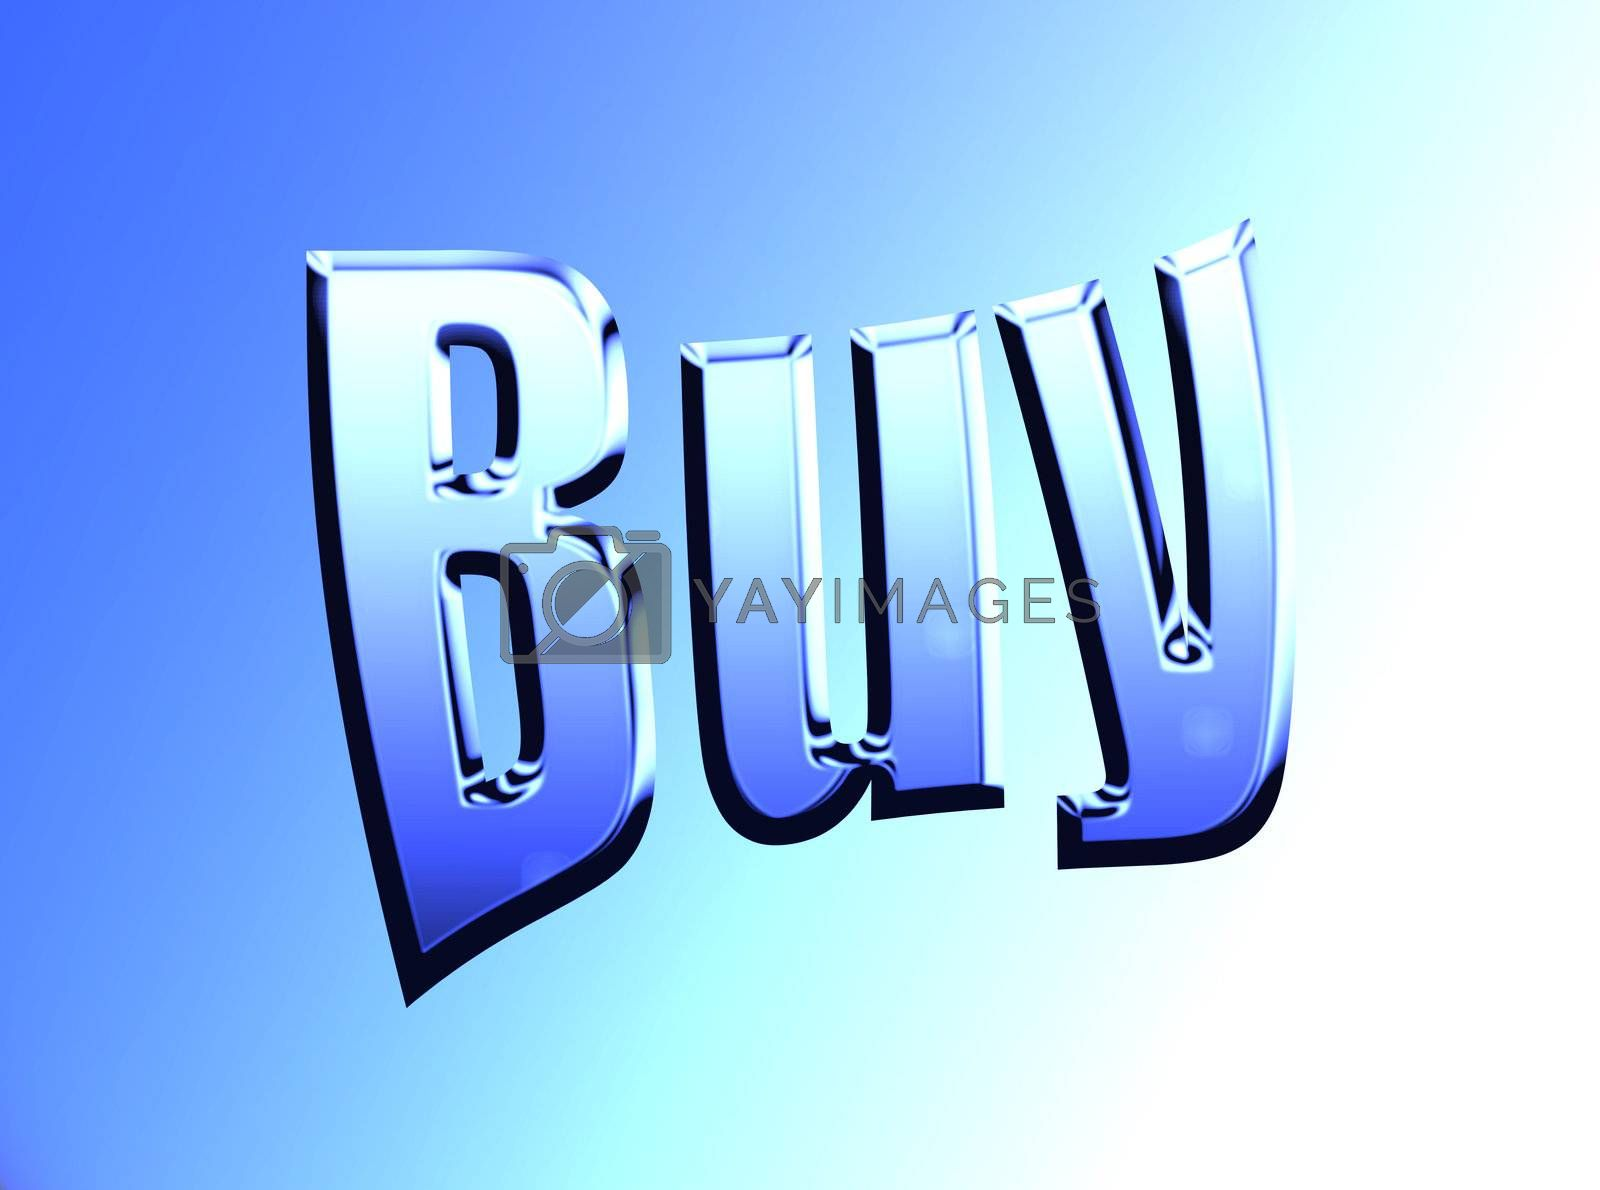 buy text on blue and white background with light effects